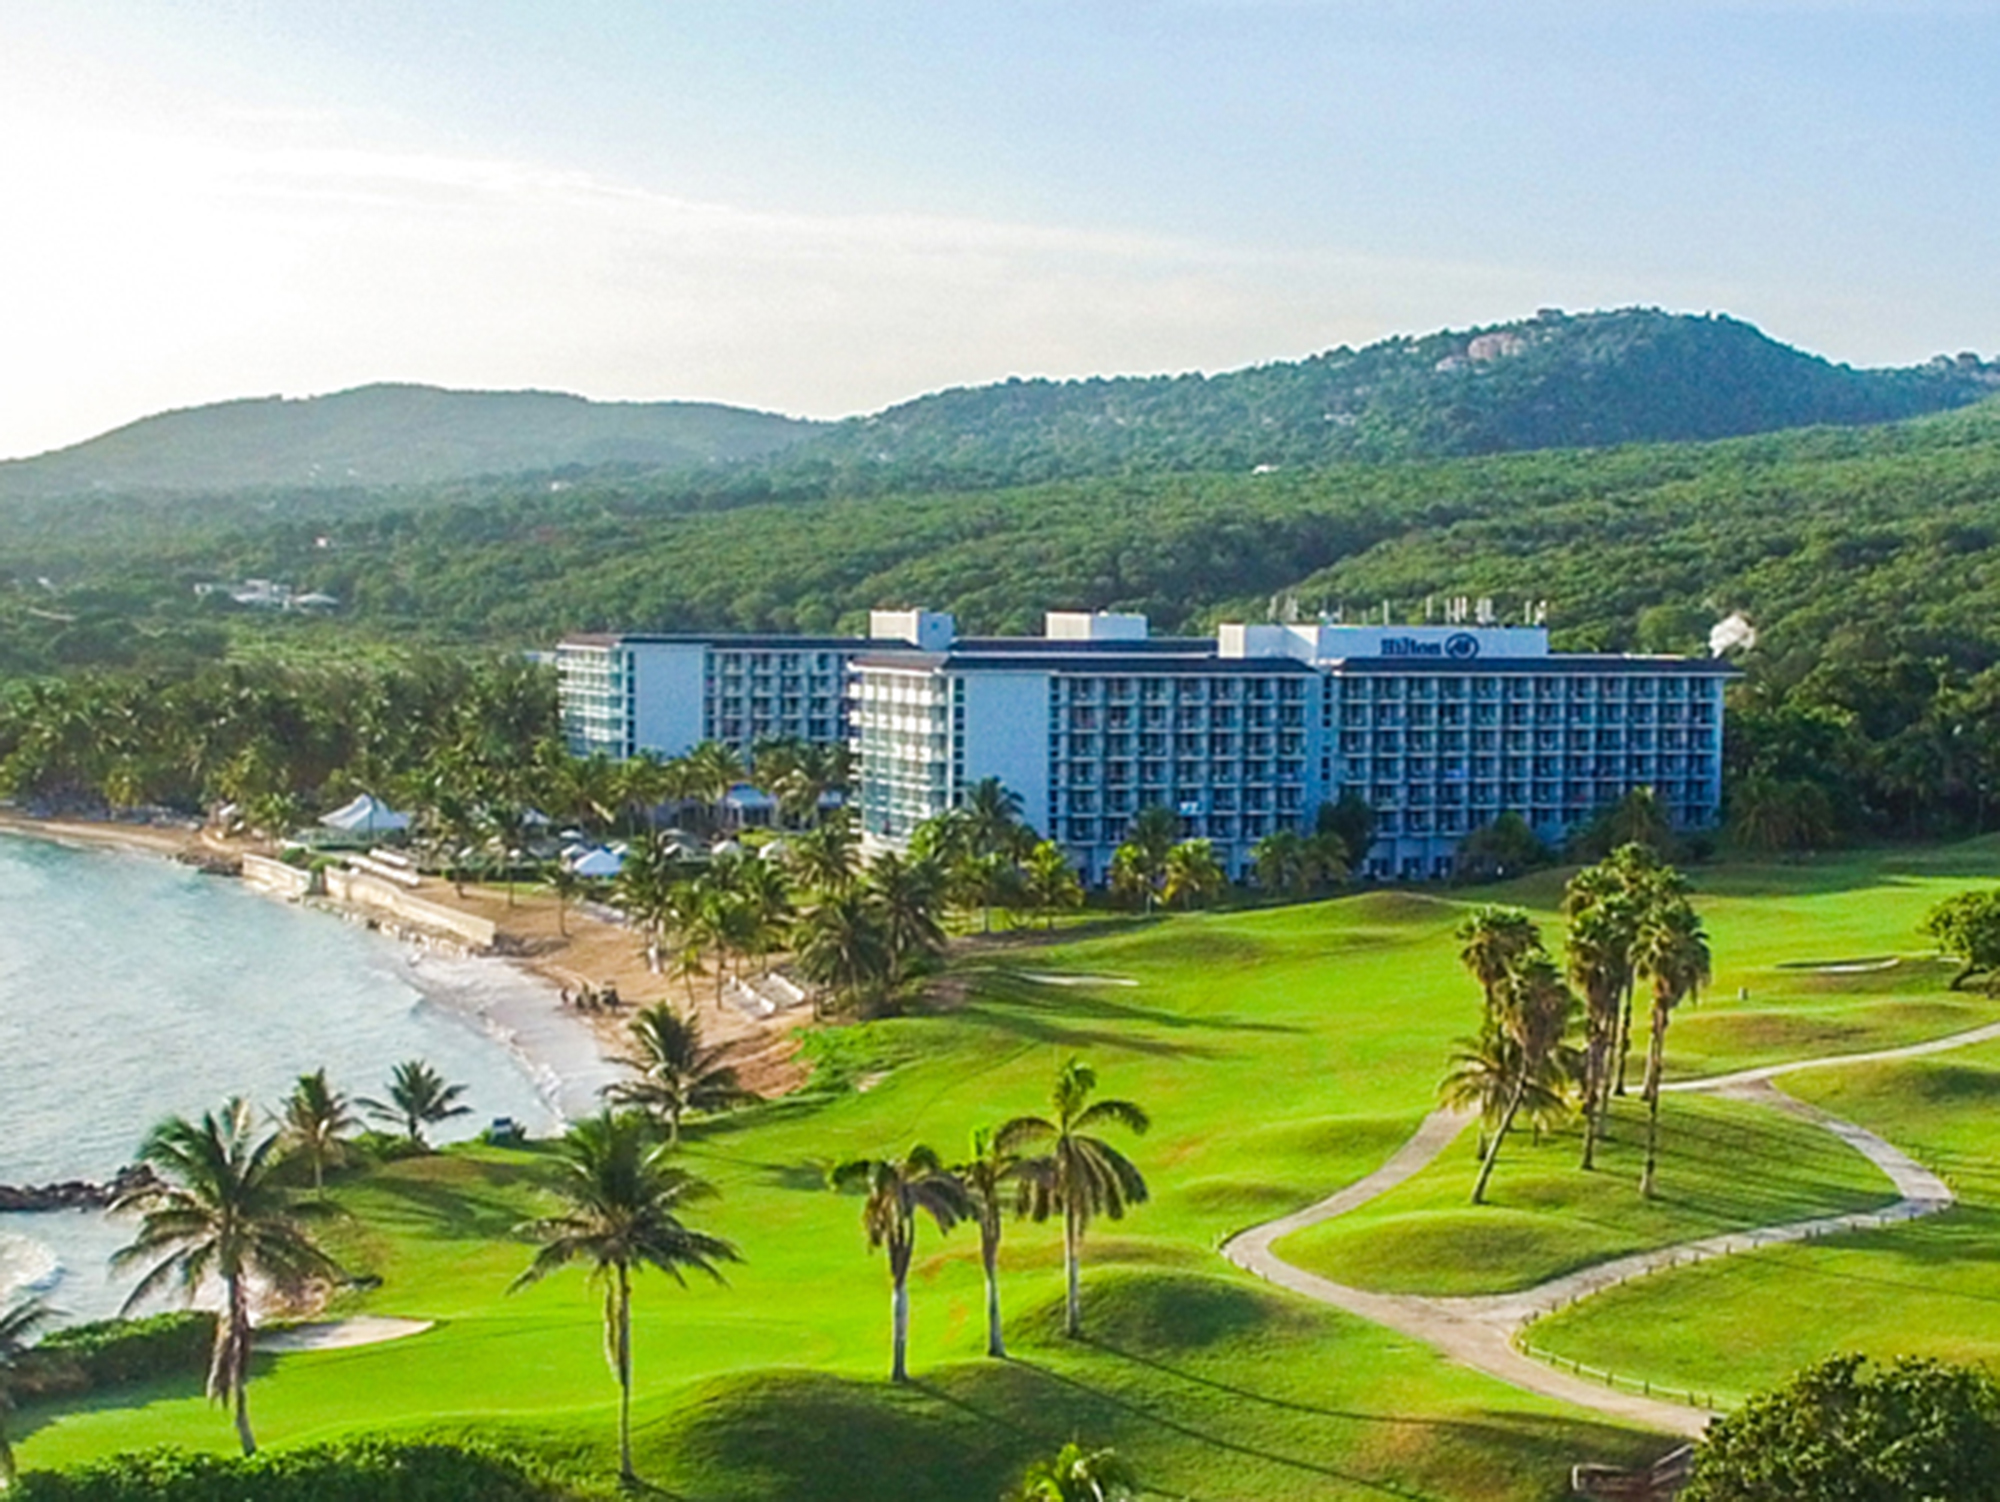 All Inclusive Resort Hilton Splashes Into The Caribbean With All Inclusive Resort Deal